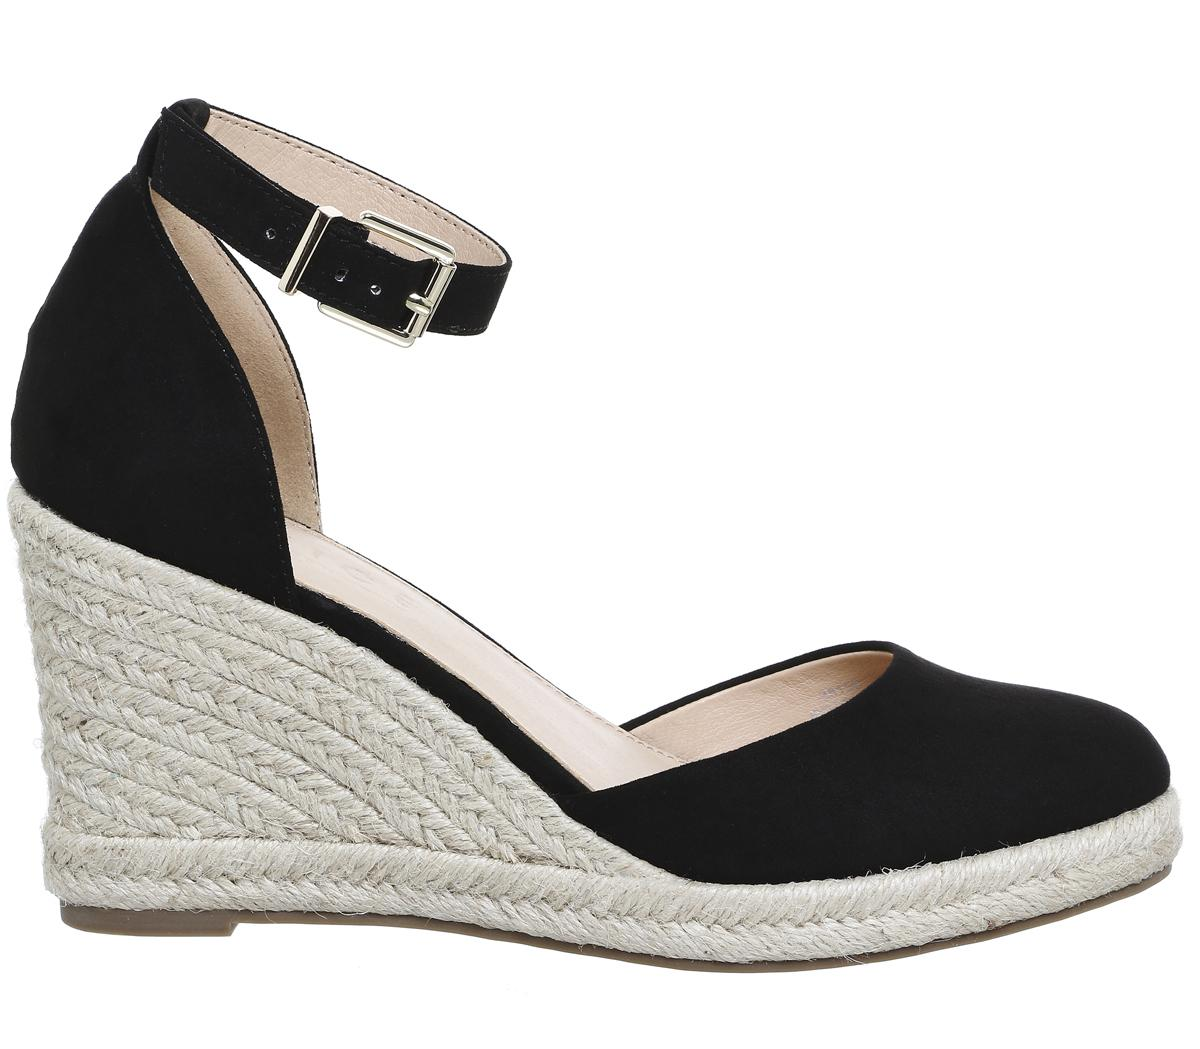 7ba2a34a8514 Lyst - Office Marsha Closed Toe Espadrille Wedges in Black